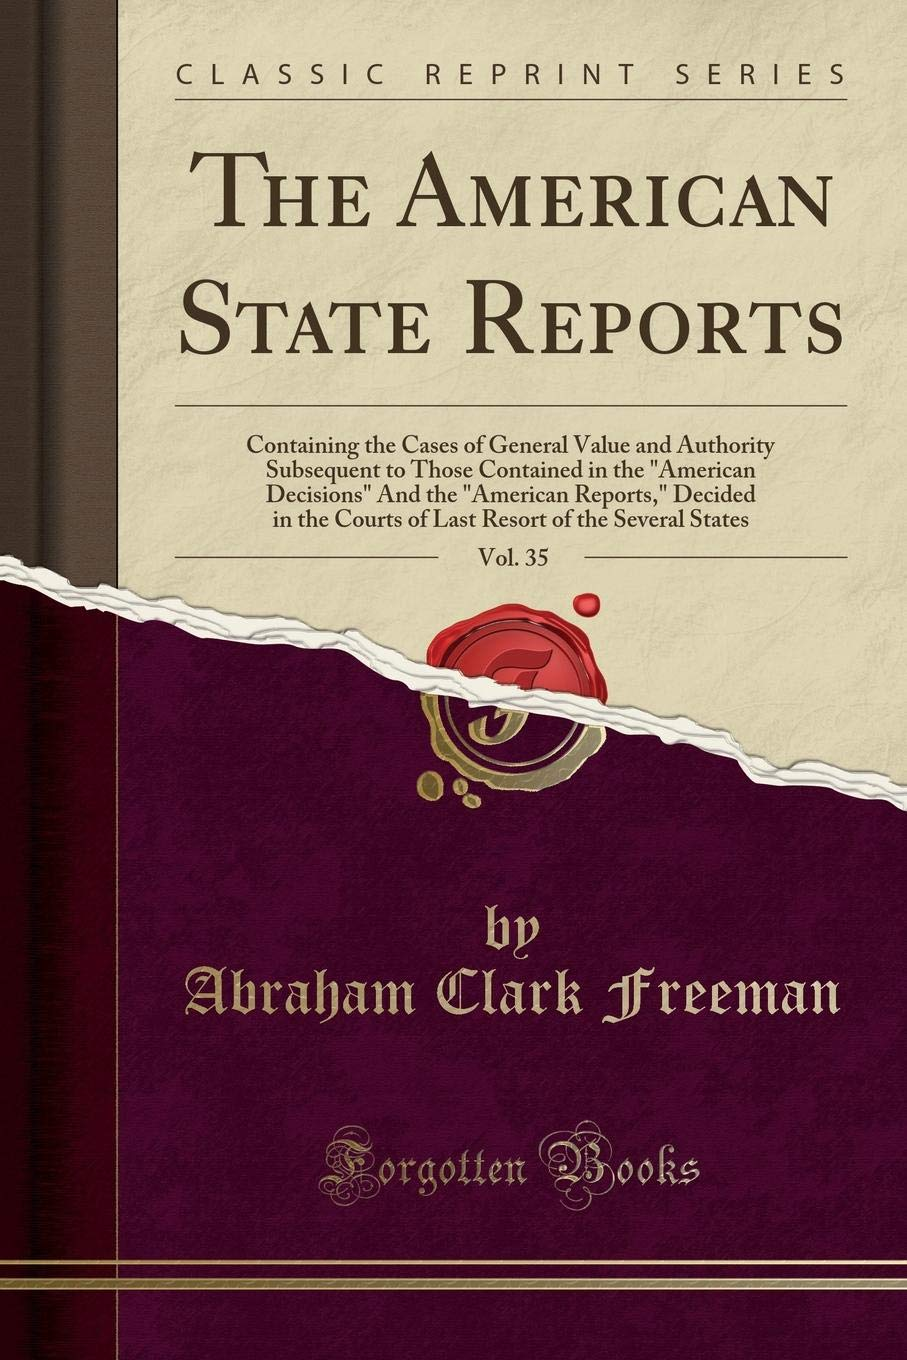 """Download The American State Reports, Vol. 35: Containing the Cases of General Value and Authority Subsequent to Those Contained in the """"American Decisions"""" And ... of the Several States (Classic Reprint) ebook"""